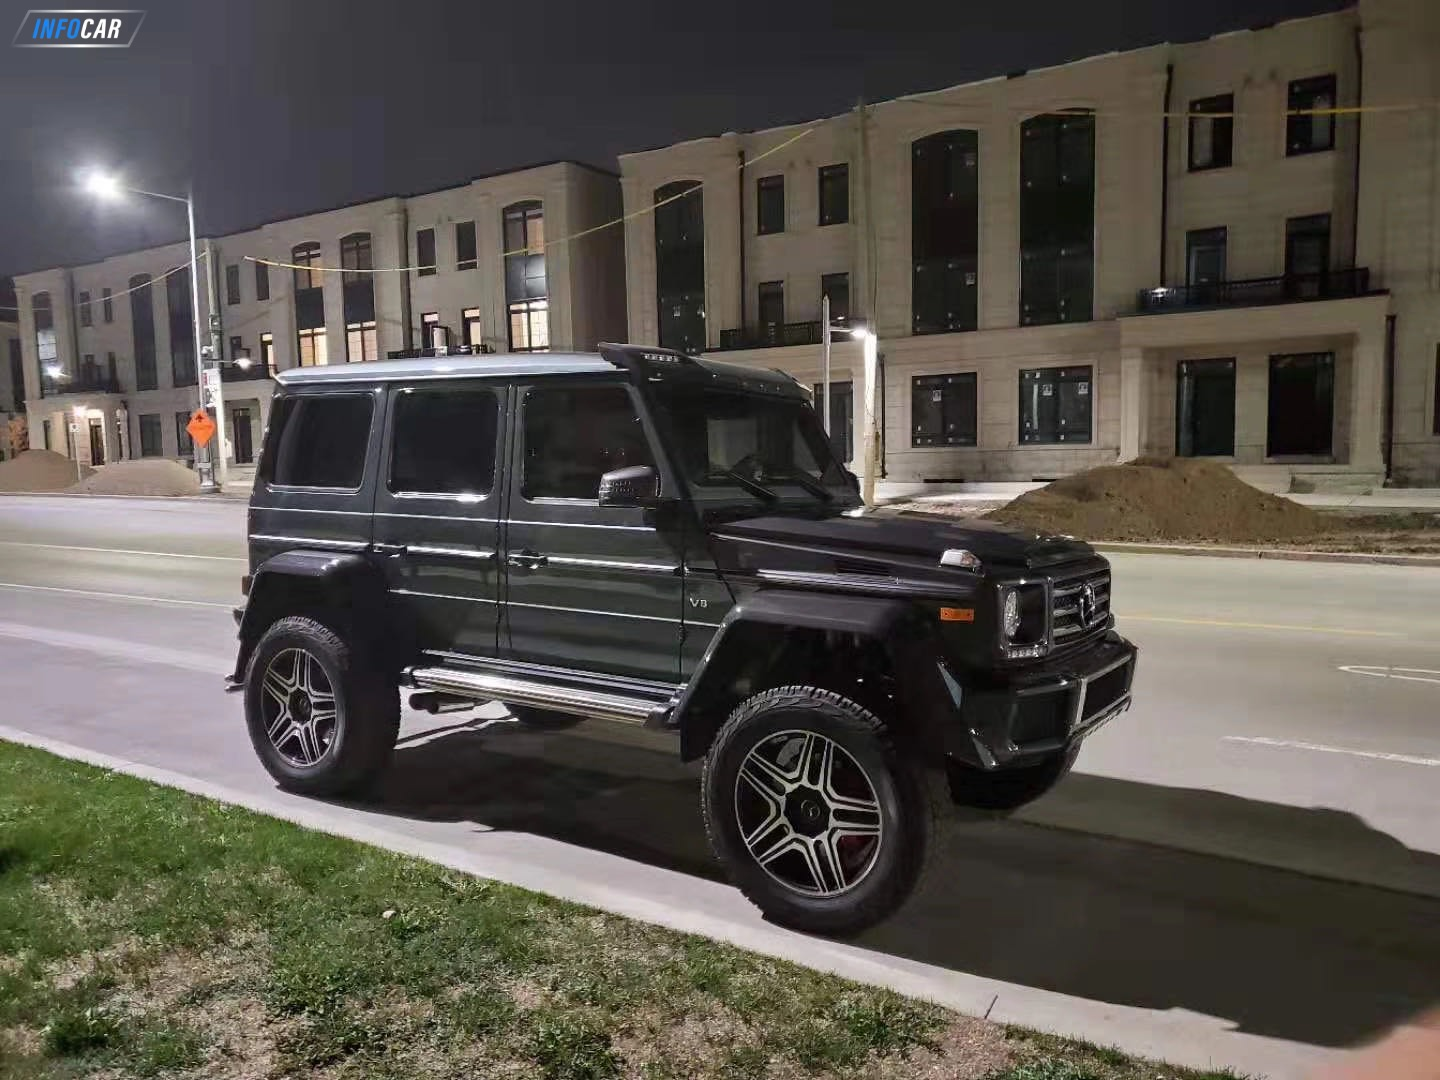 2018 Mercedes-Benz G-Class g550 4x4 - INFOCAR - Toronto's Most Comprehensive New and Used Auto Trading Platform